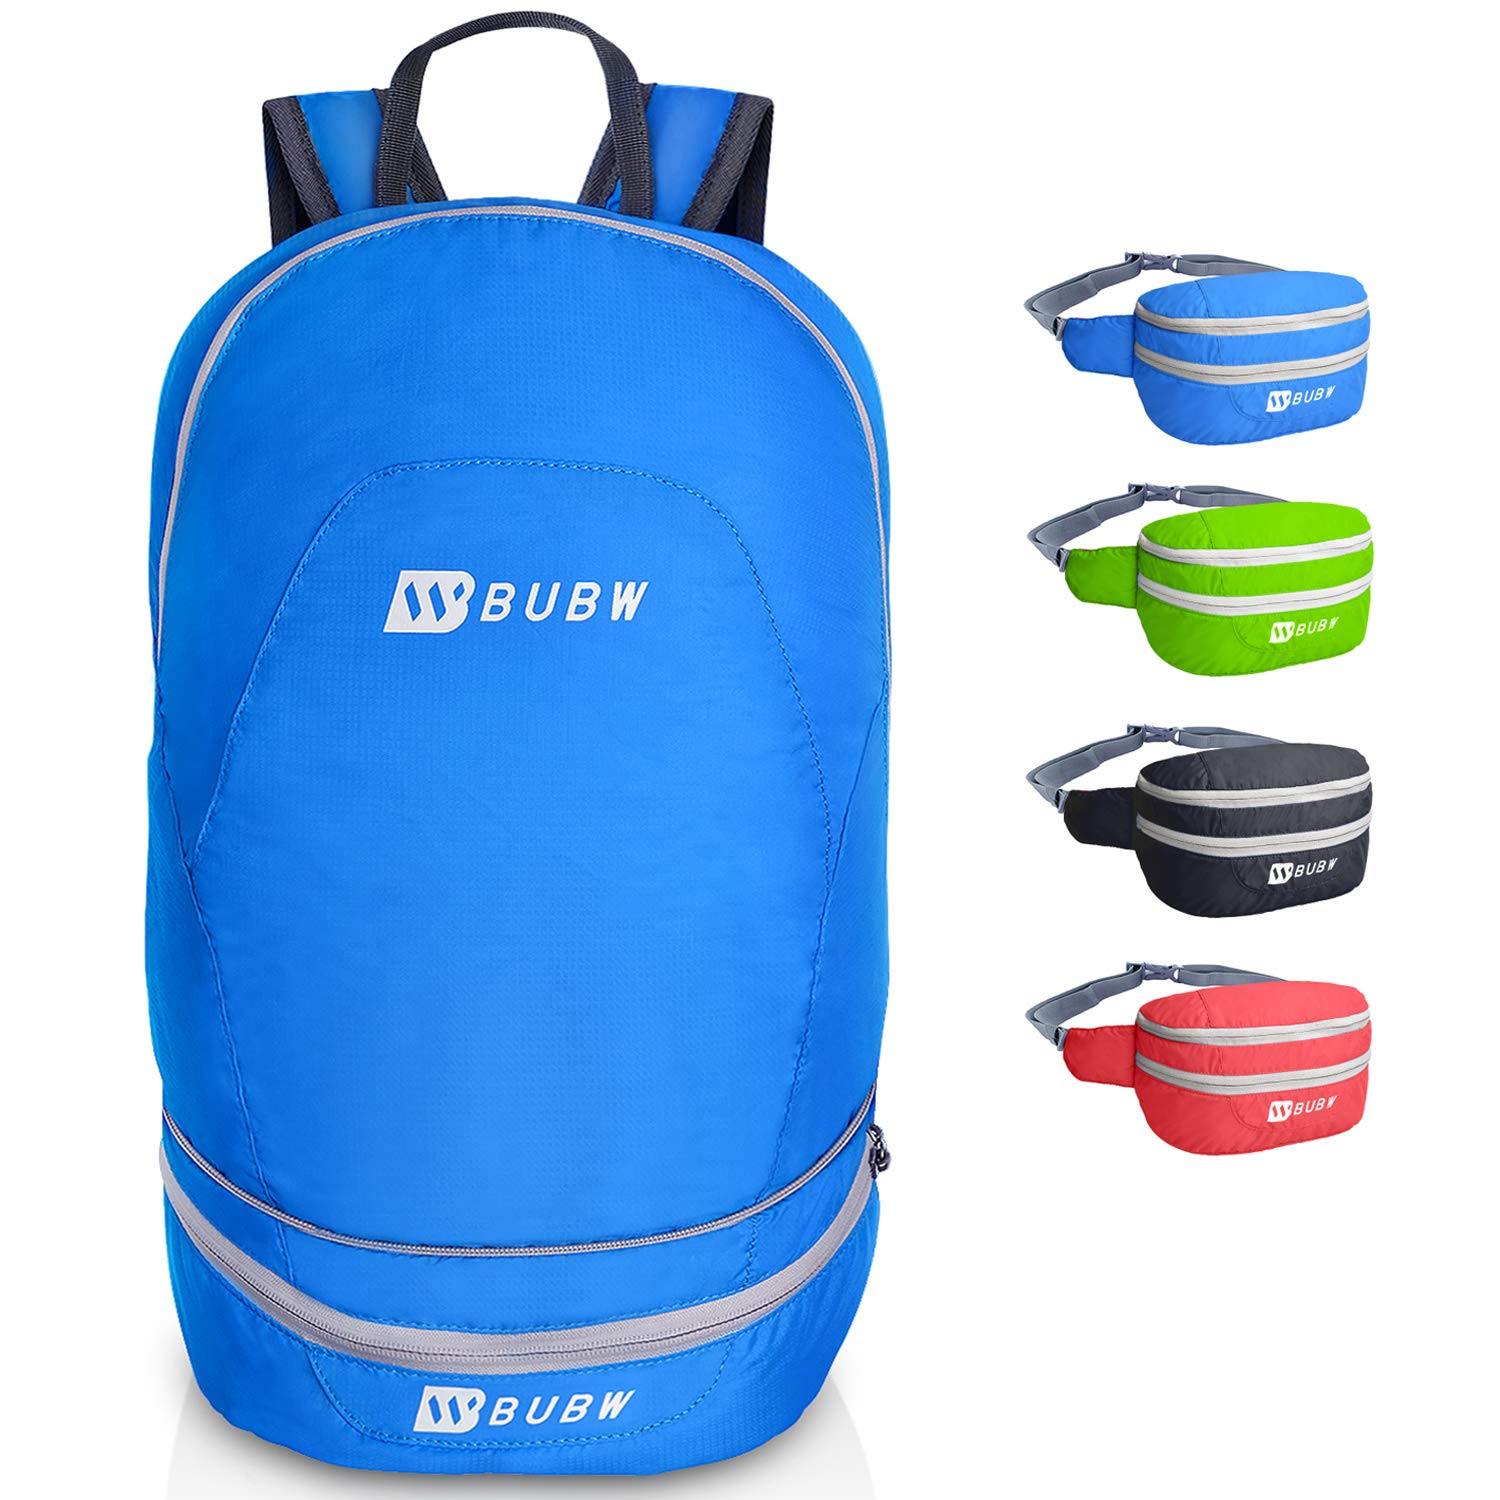 BUBW 2 IN 1 Packable Backpack Waist Pack Lightweight Foldable Daypack Bag for hiking,travelling,cycling